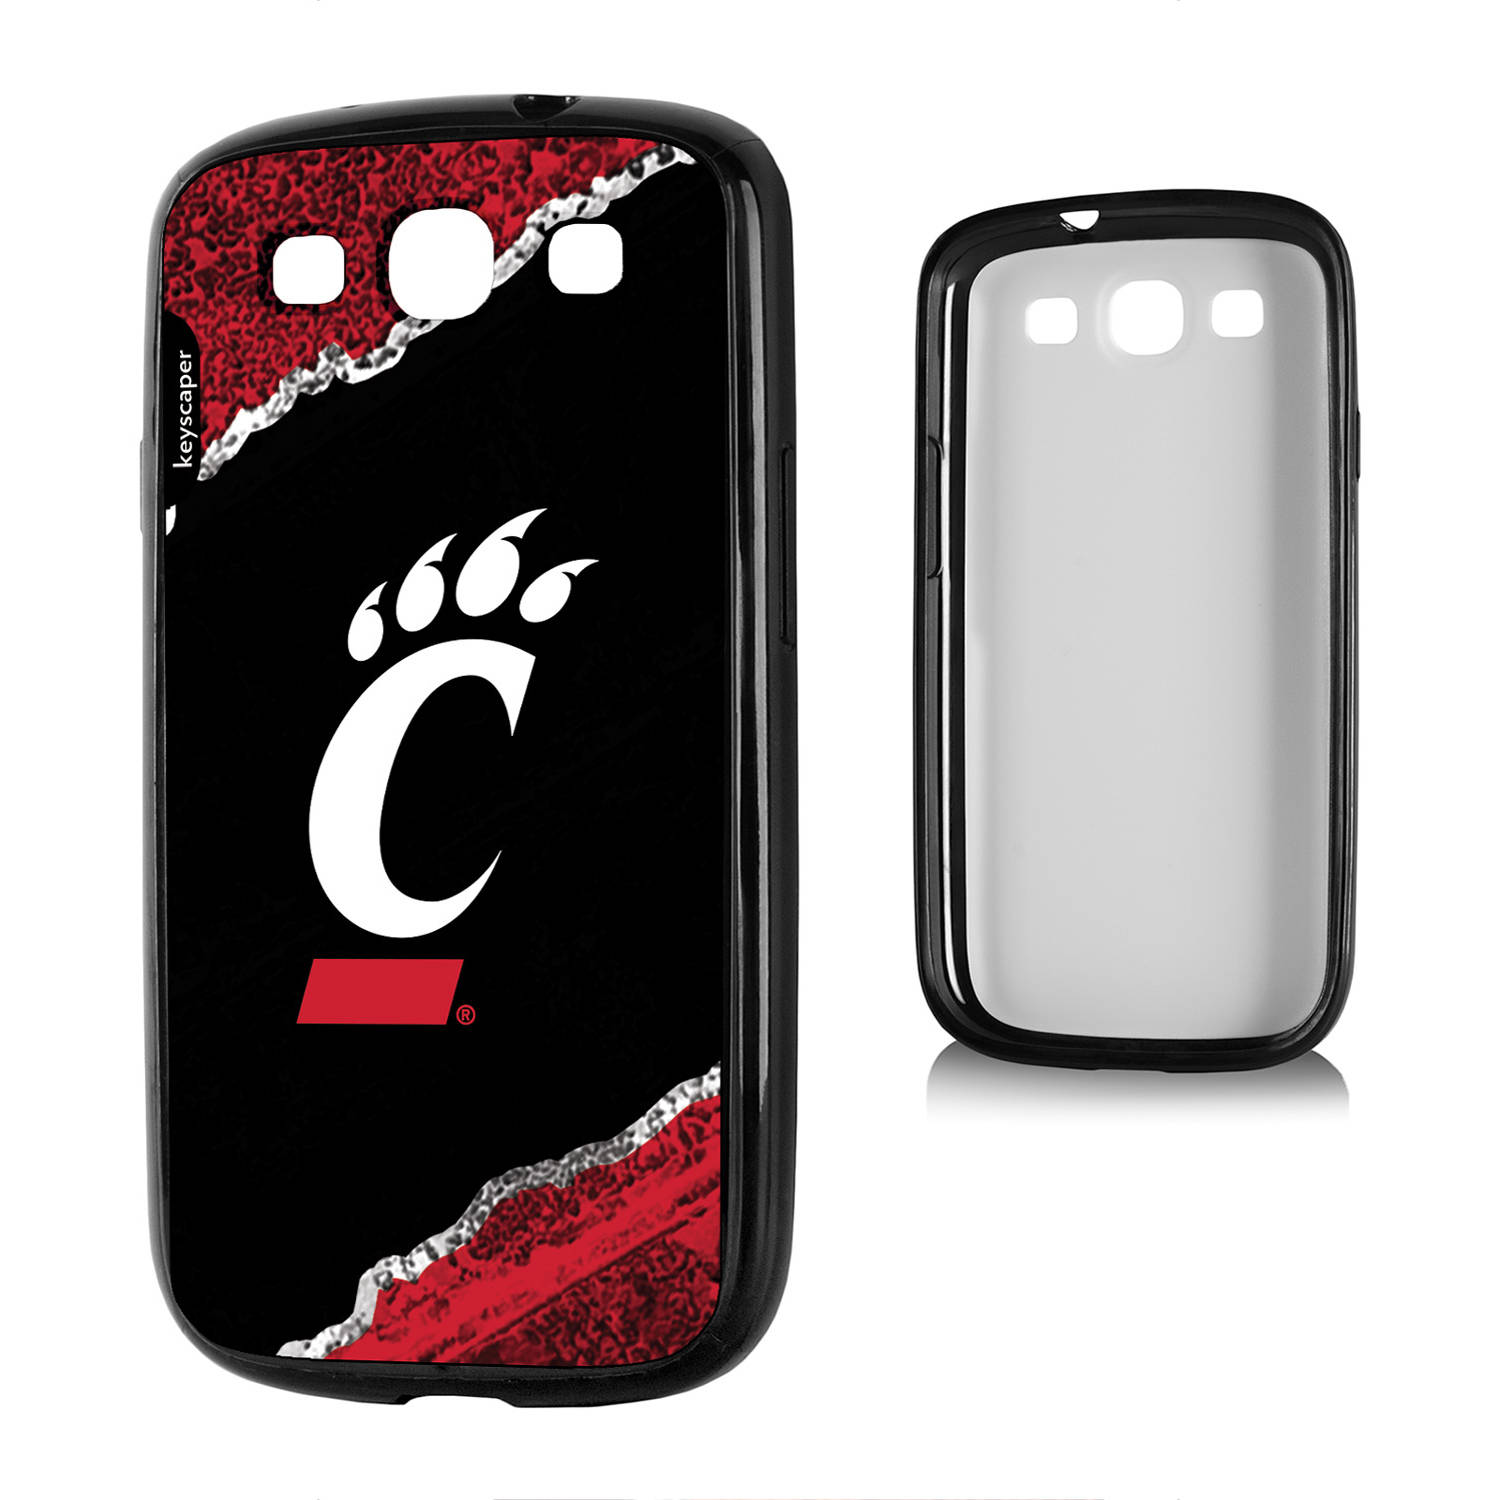 Cincinnati Bearcats Galaxy S3 Bumper Case